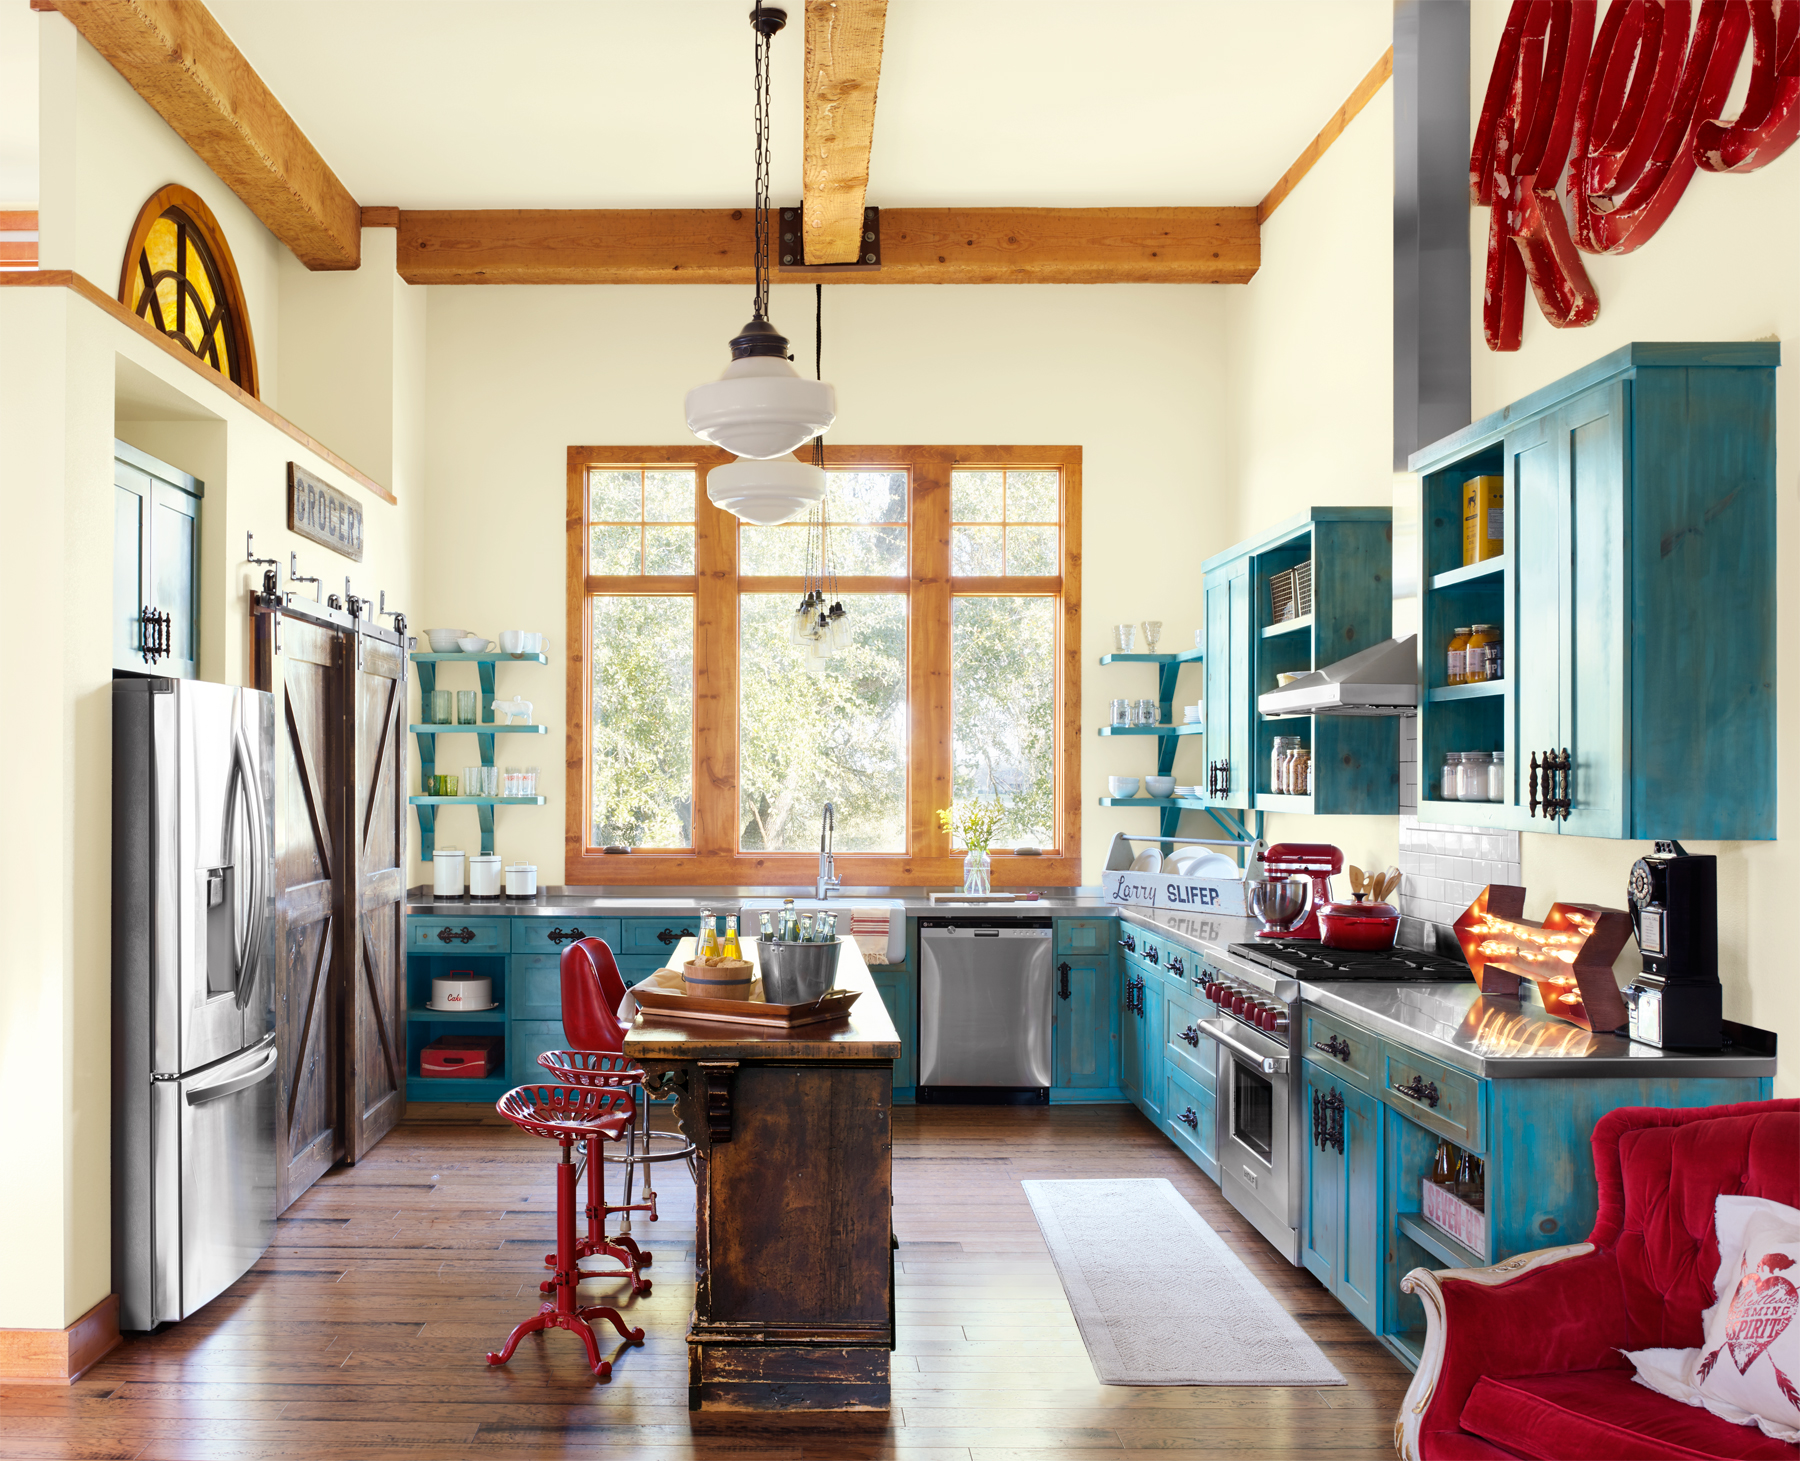 Vintage Kitchen Ideas: 10 Ways To Add Colorful Vintage Style To Your Kitchen